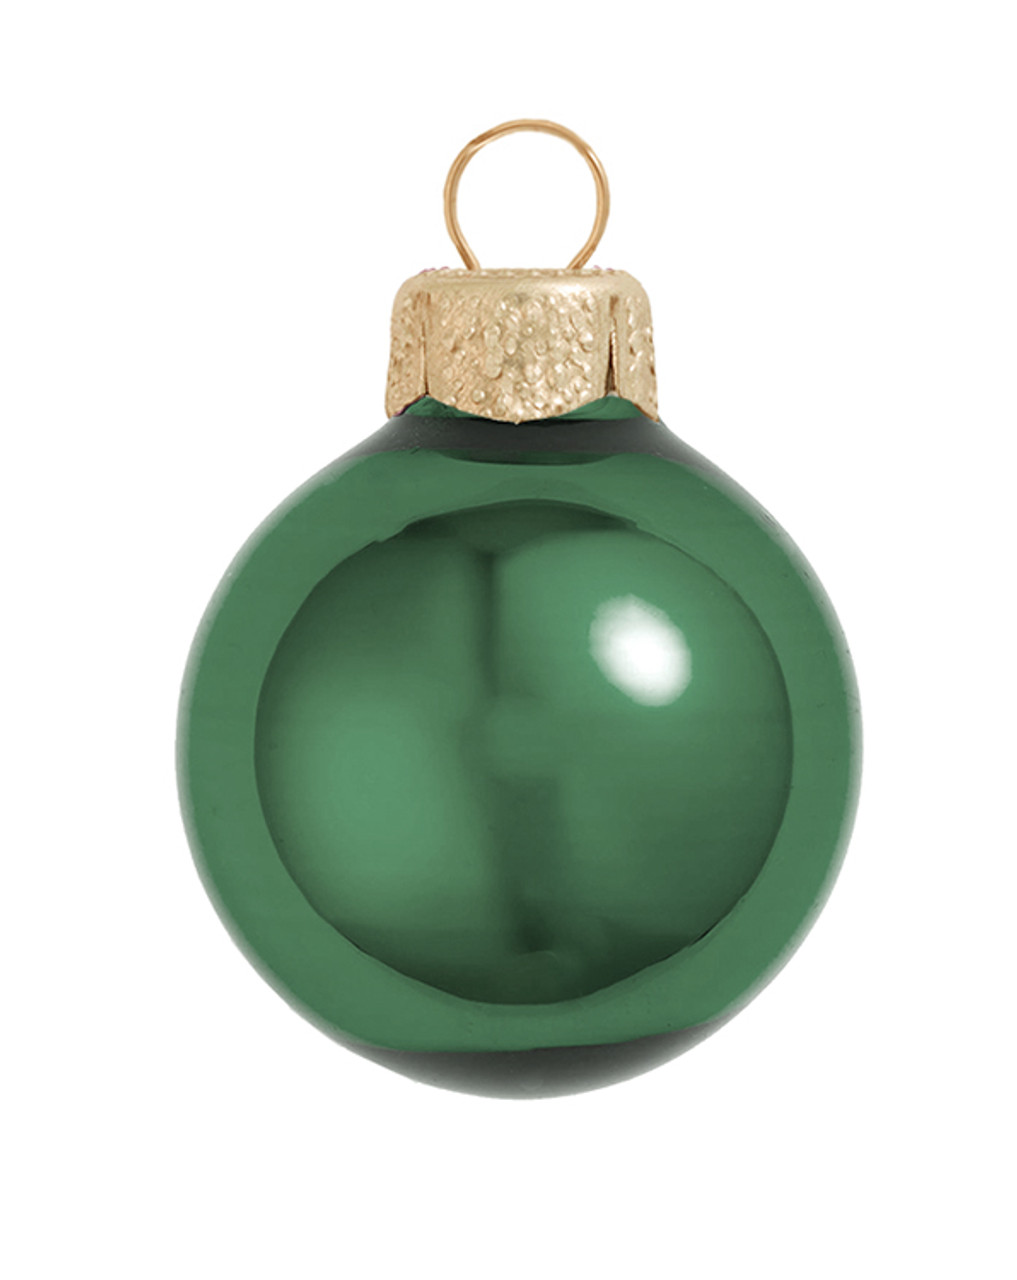 12ct Emerald Green Glass Shiny Finish Christmas Ball Ornaments 2 75 70mm Christmas Central